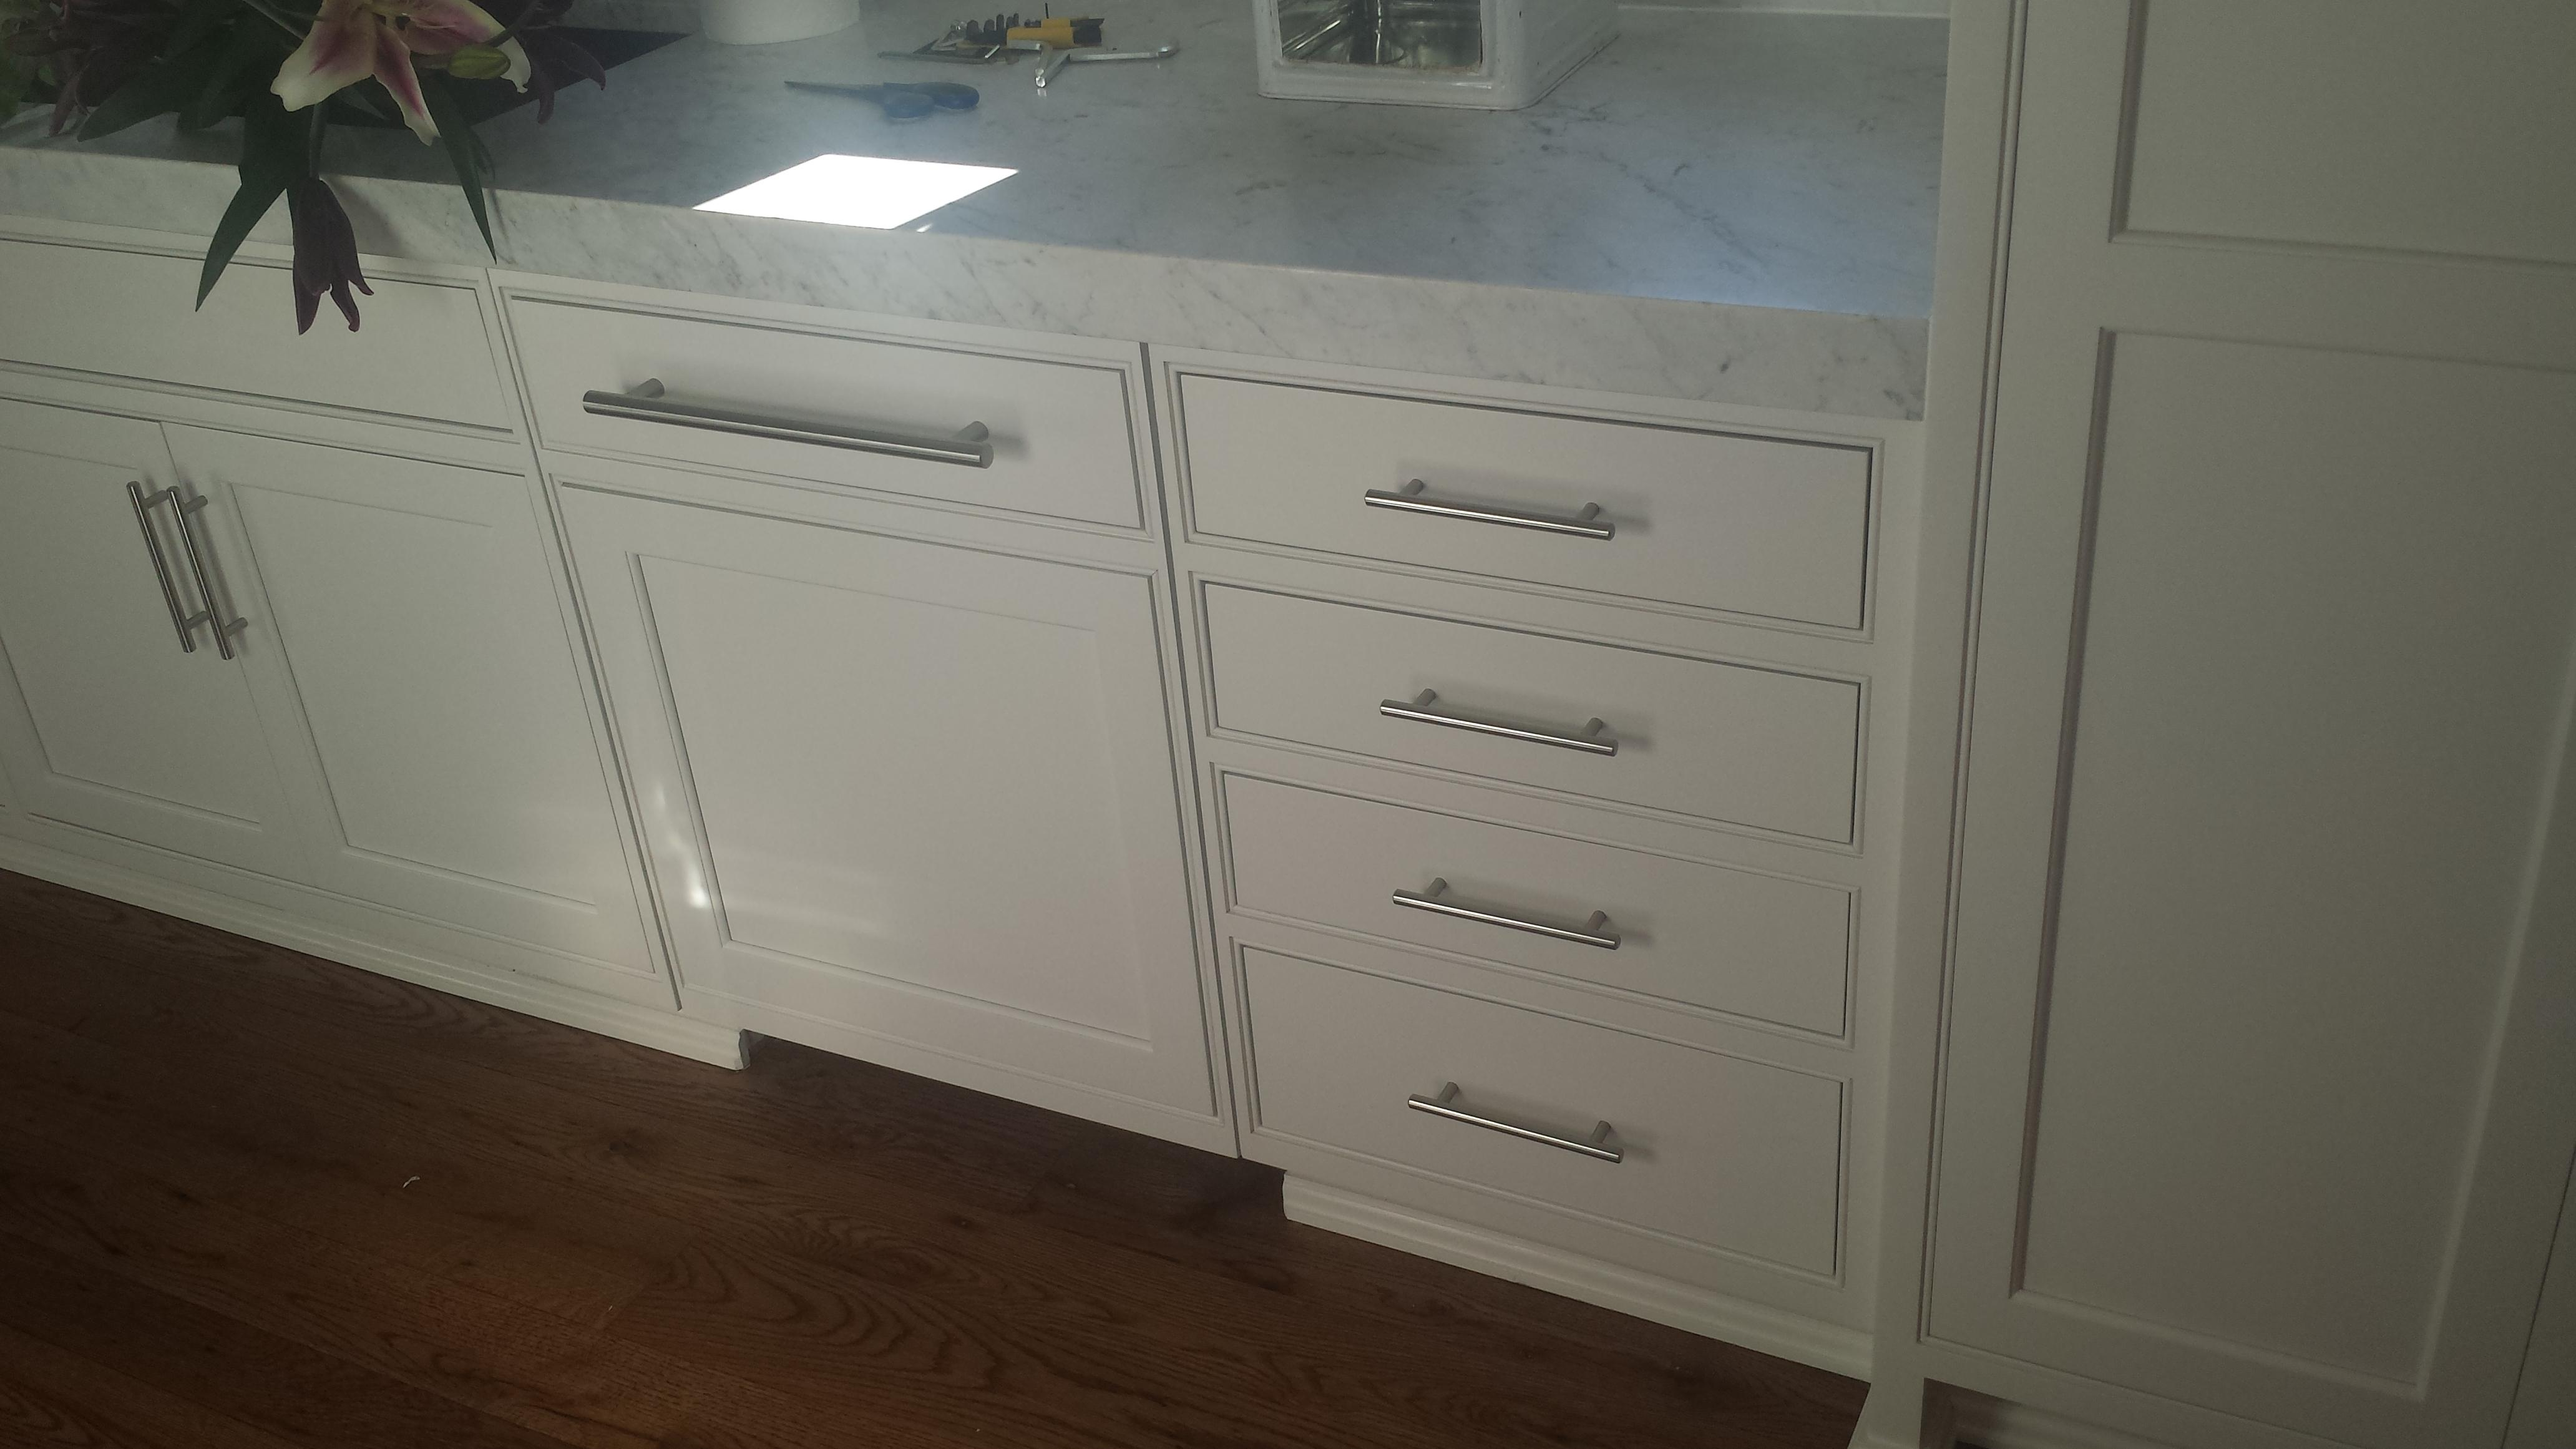 Triangle Cabinets & Renovations image 19